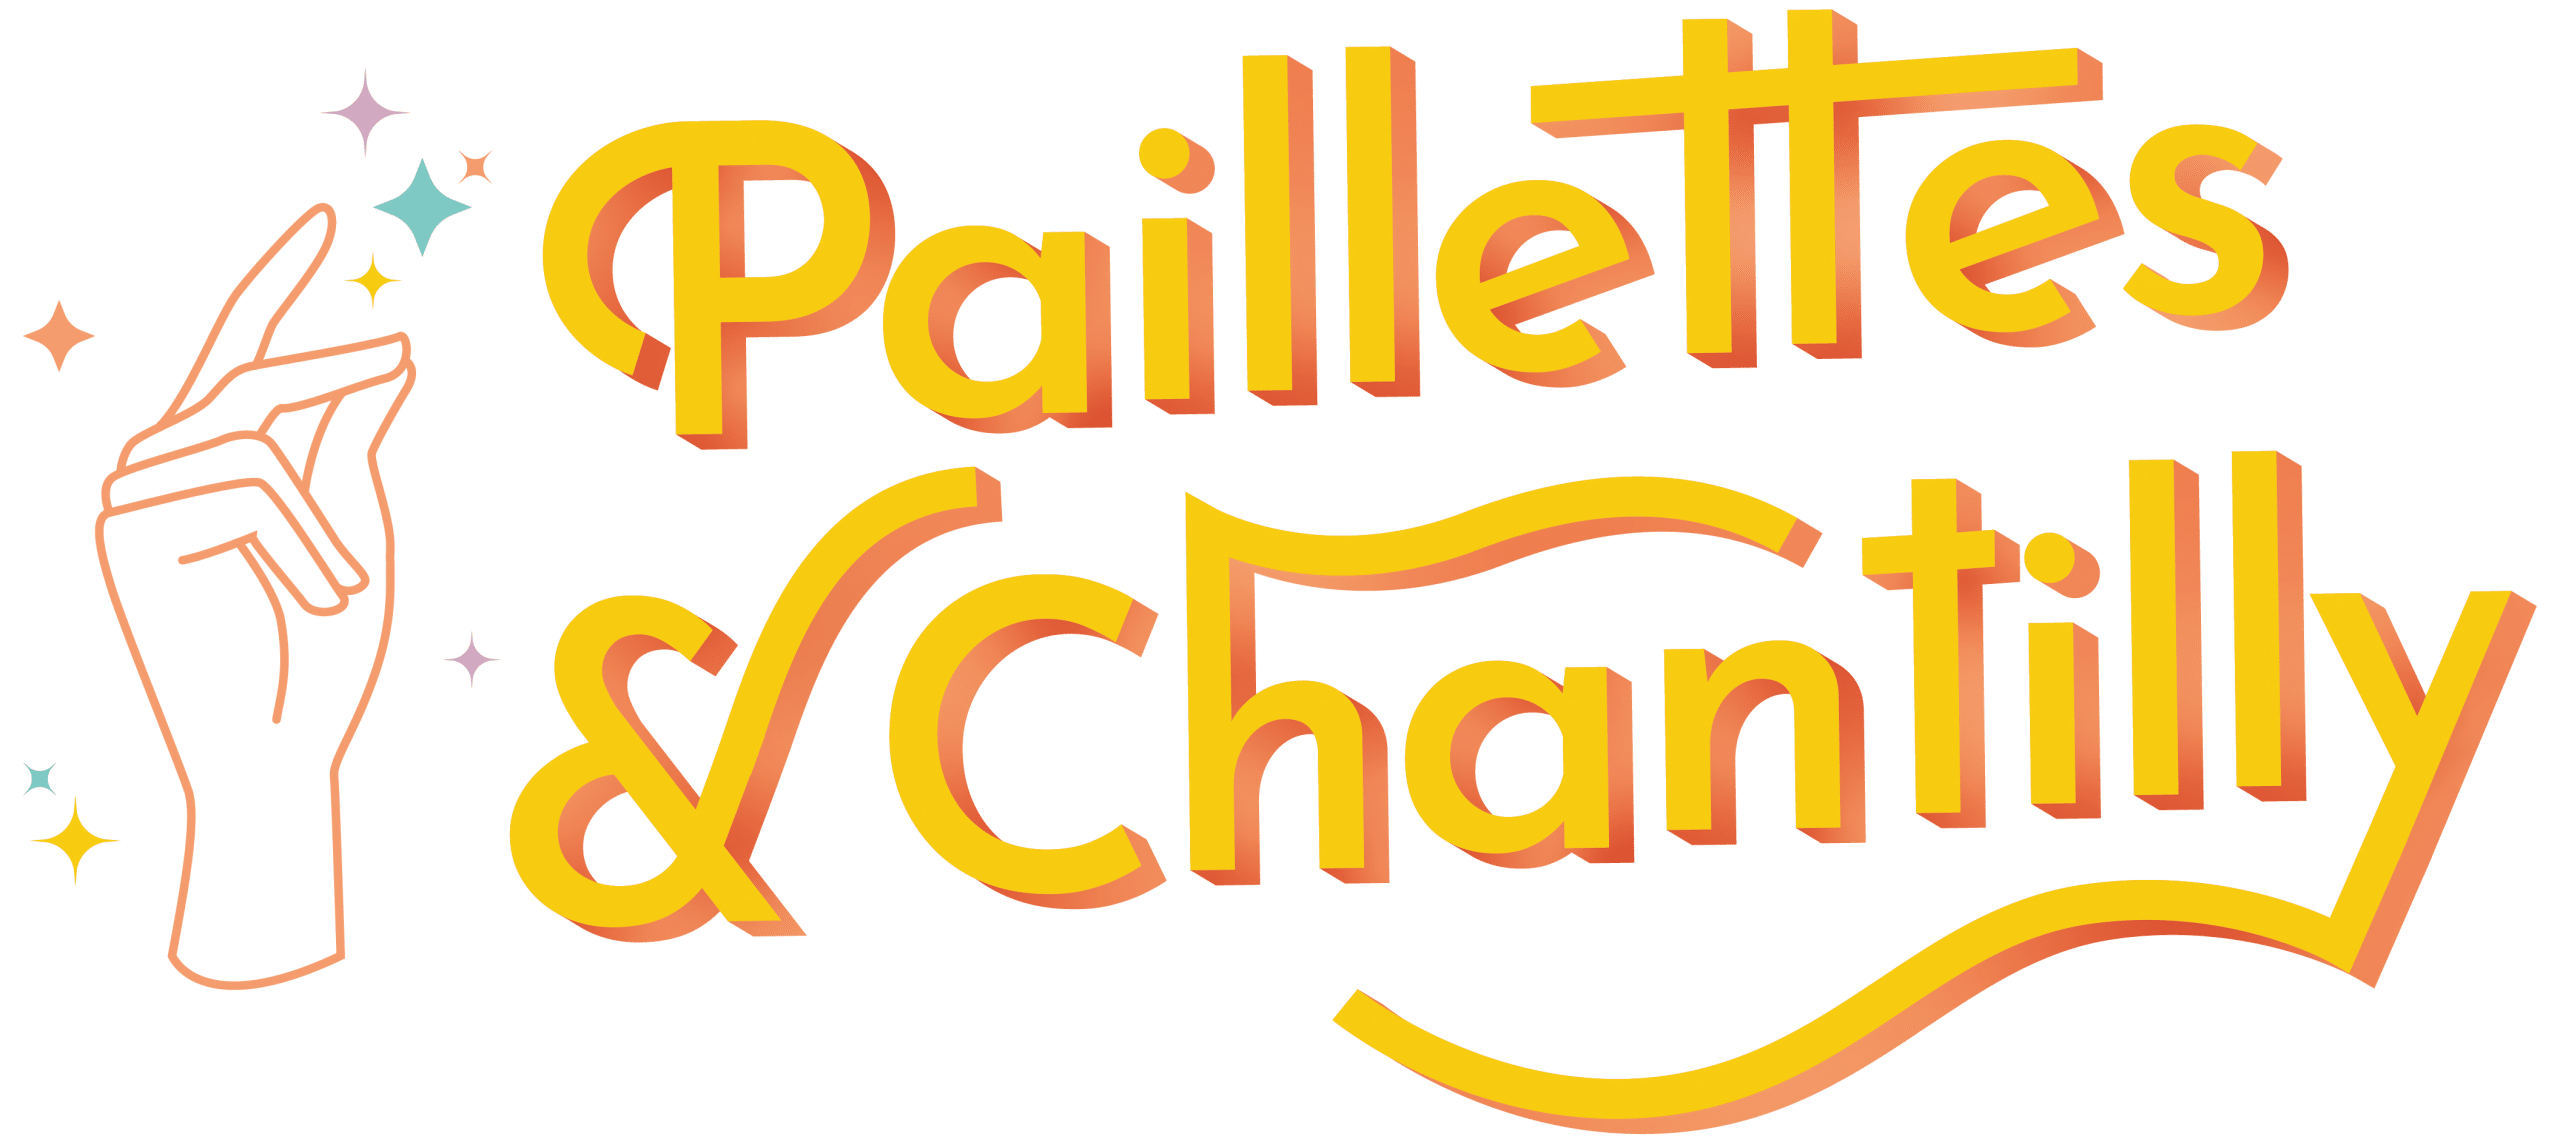 Paillettes & chantilly logo